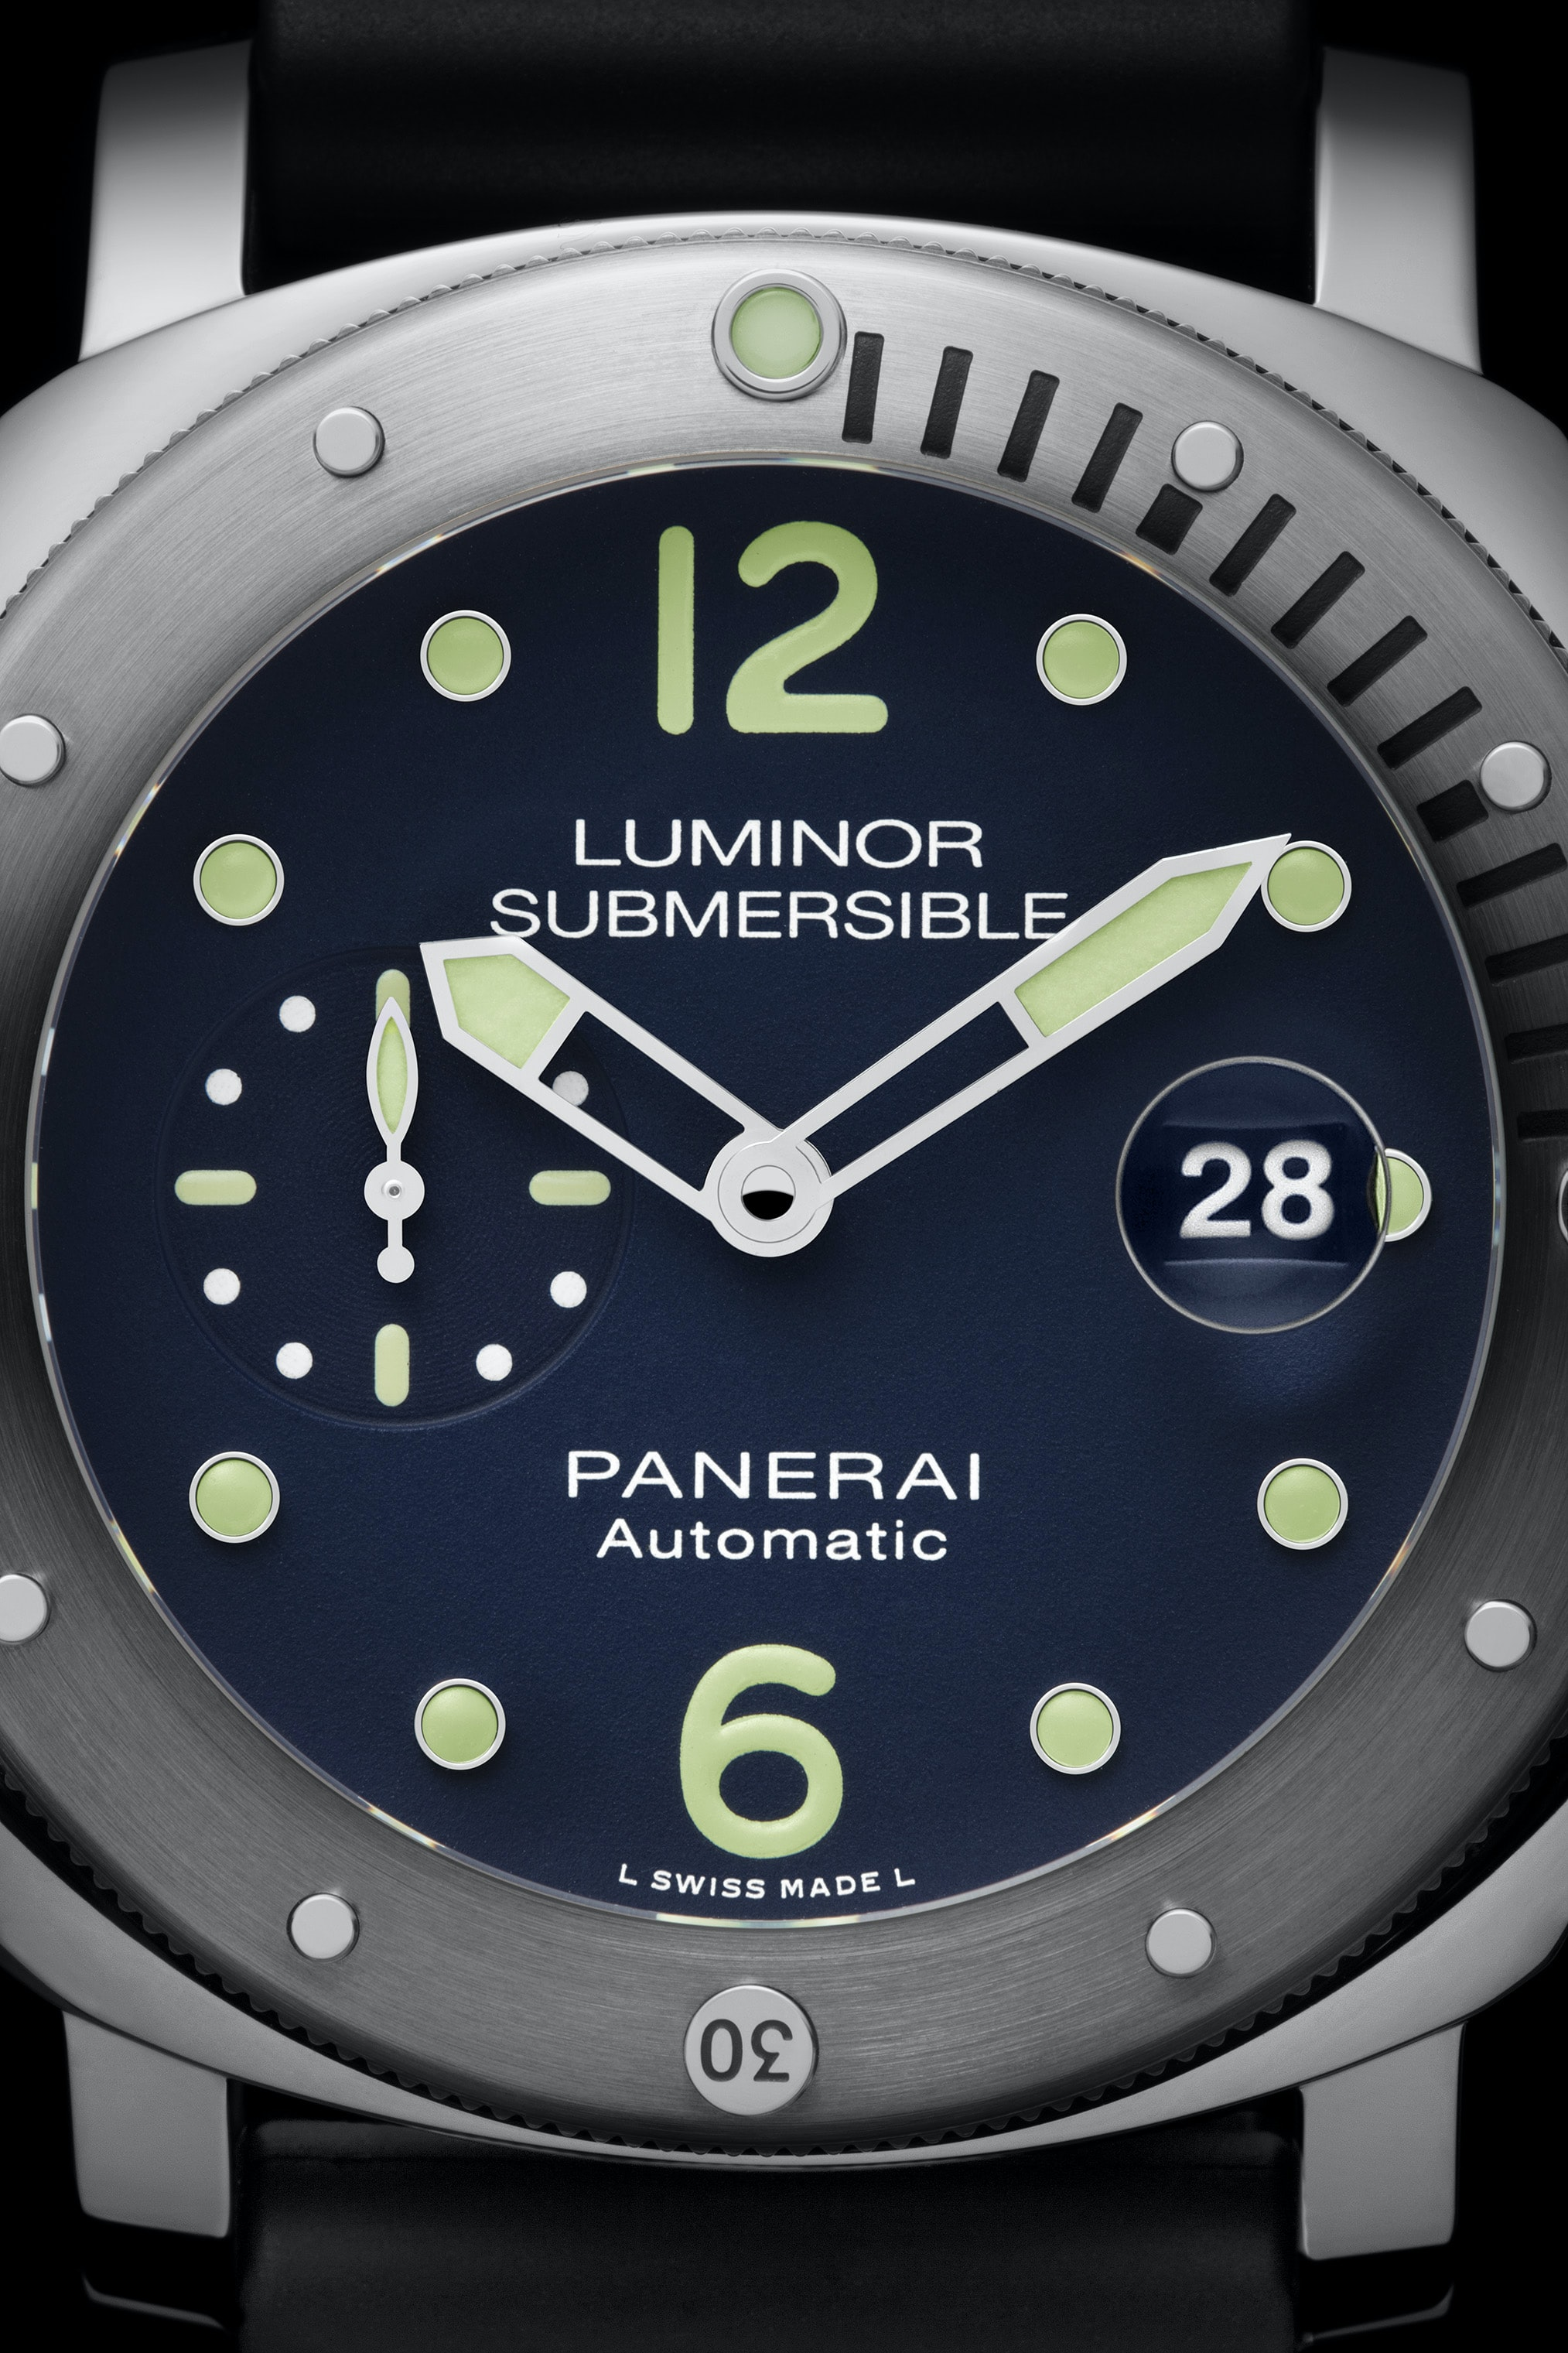 Introducing: The Panerai Limited Edition Luminor Submersible Acciaio PAM00731, An E-Boutique Limited Edition Introducing: The Panerai Limited Edition Luminor Submersible Acciaio PAM00731, An E-Boutique Limited Edition Pam731 Cat Dett04